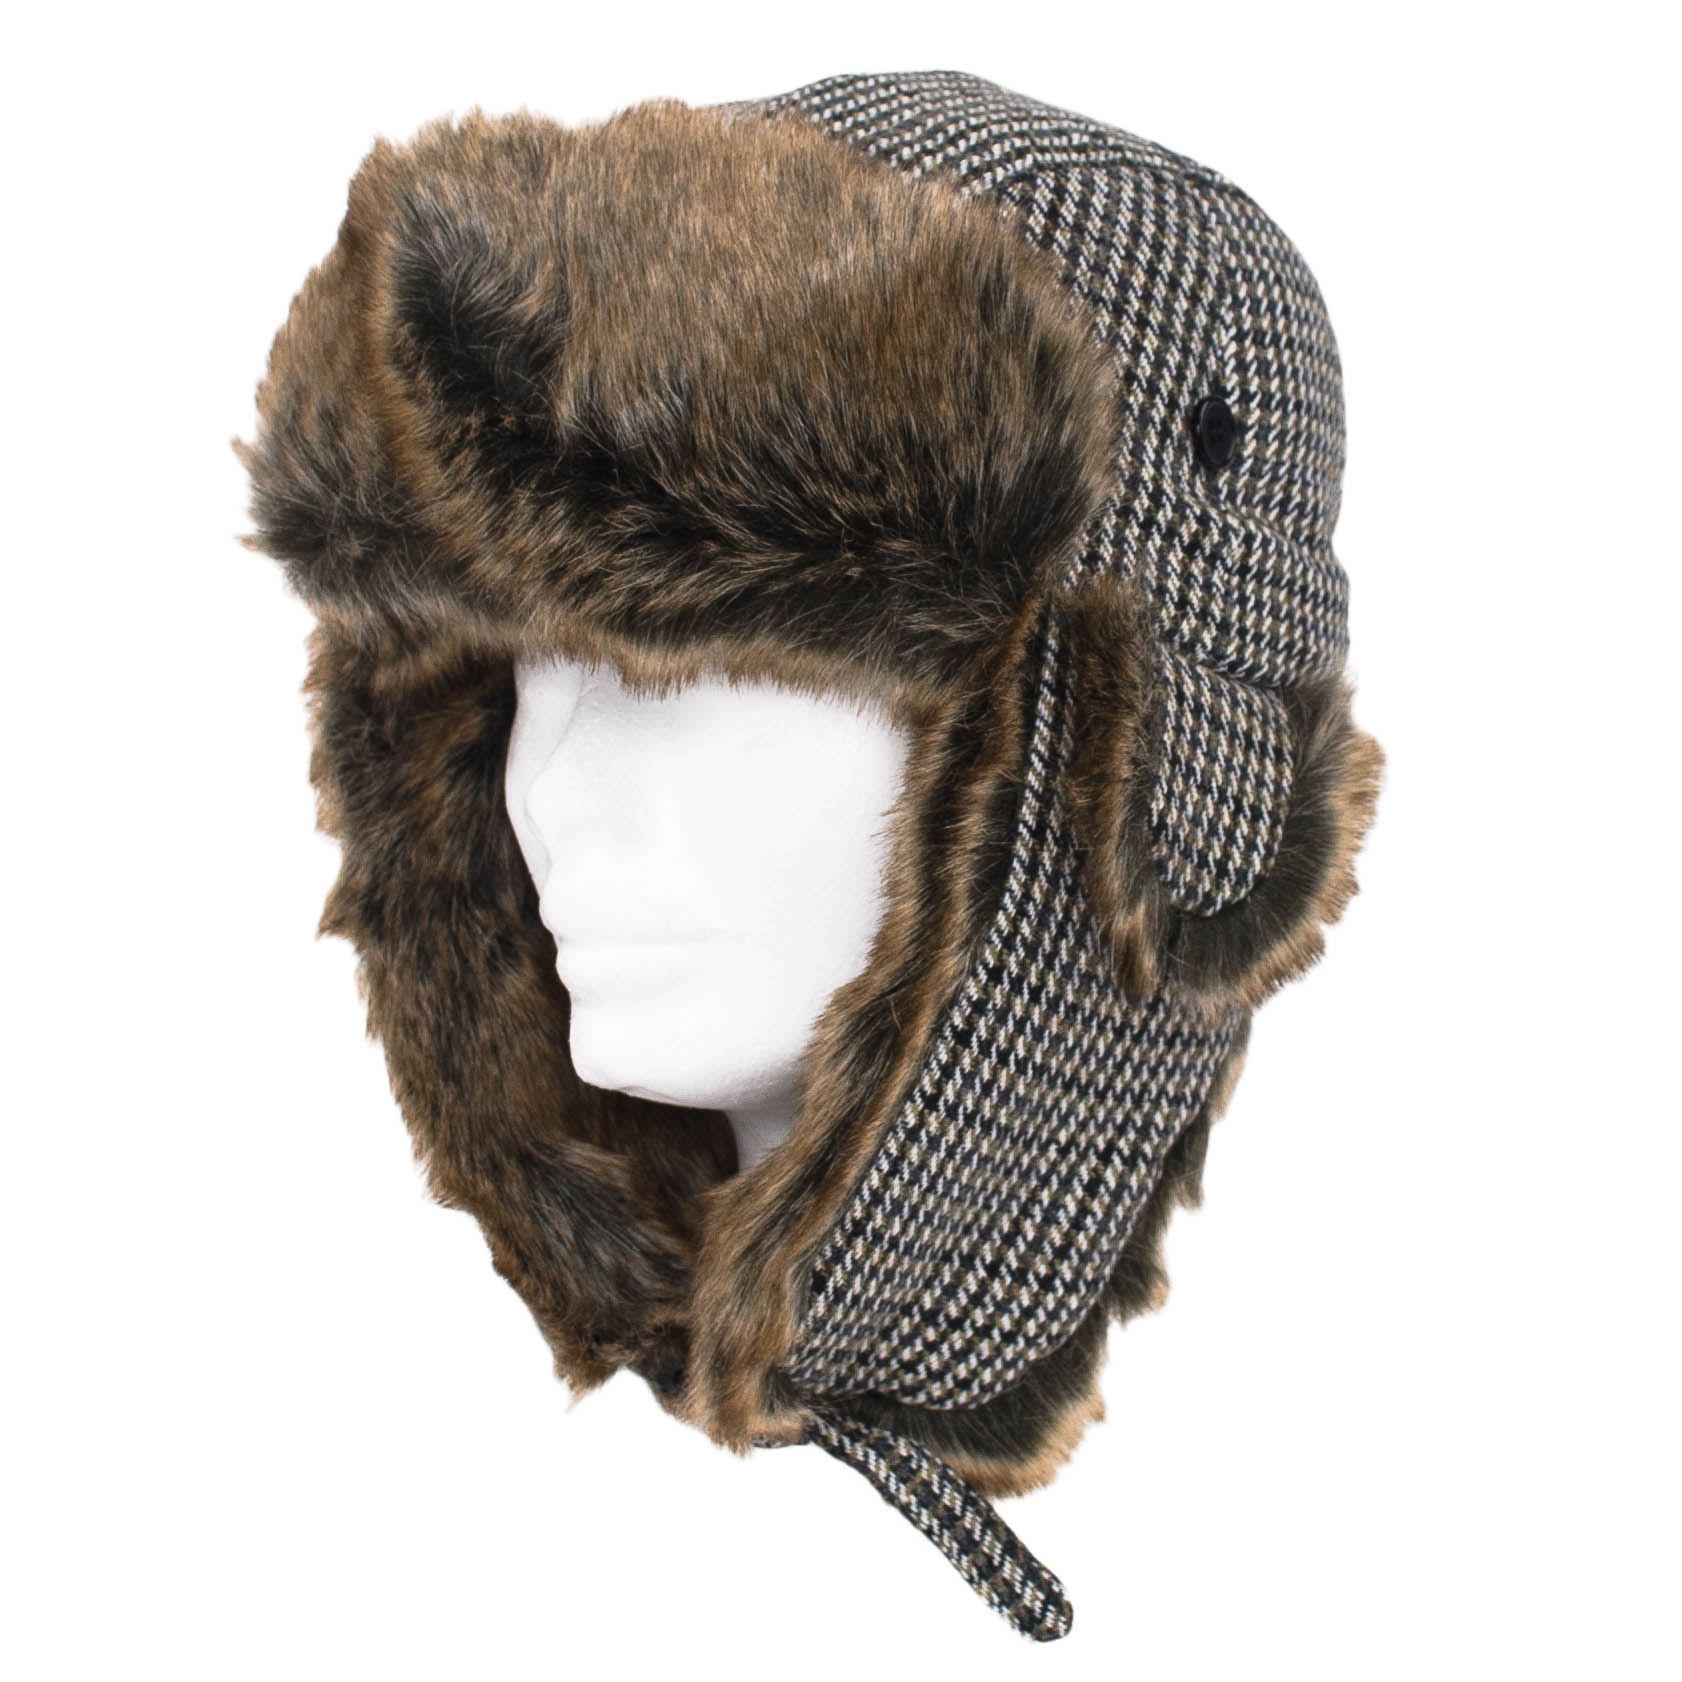 Faux Fur Ski Hats for Men. Hot this week. New Men's One Size Winter Quilted Trapper Ski Winter Hat Cap With Faux Fur Trim. £ Adult Luxury Trapper Hat Men Ladies Womens Faux Fur Russian Cossack Ski Boy Girl. £ + £ postage. ADULTS LUXURY FAUX-FUR RUSSIAN USHANKA COSSACK TRAPPER SKI WINTER OUTDOOR HAT.